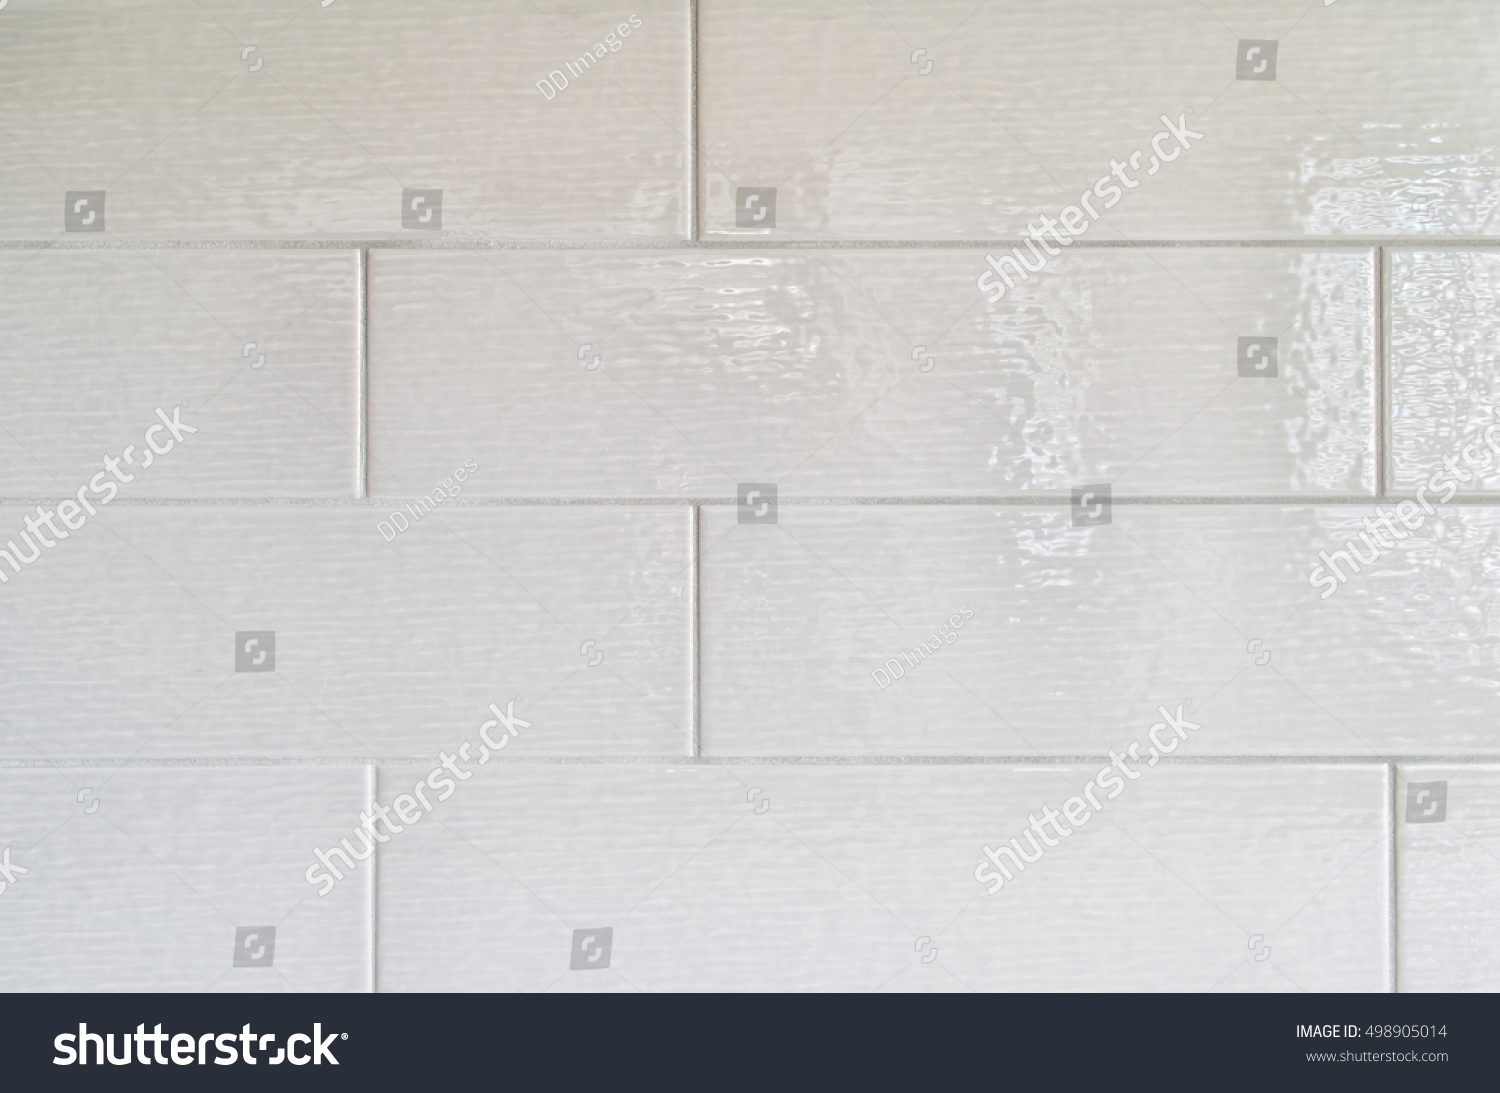 Grey kitchen backsplash made rectangular ceramic stock photo grey kitchen backsplash made with rectangular ceramic tiles dailygadgetfo Images